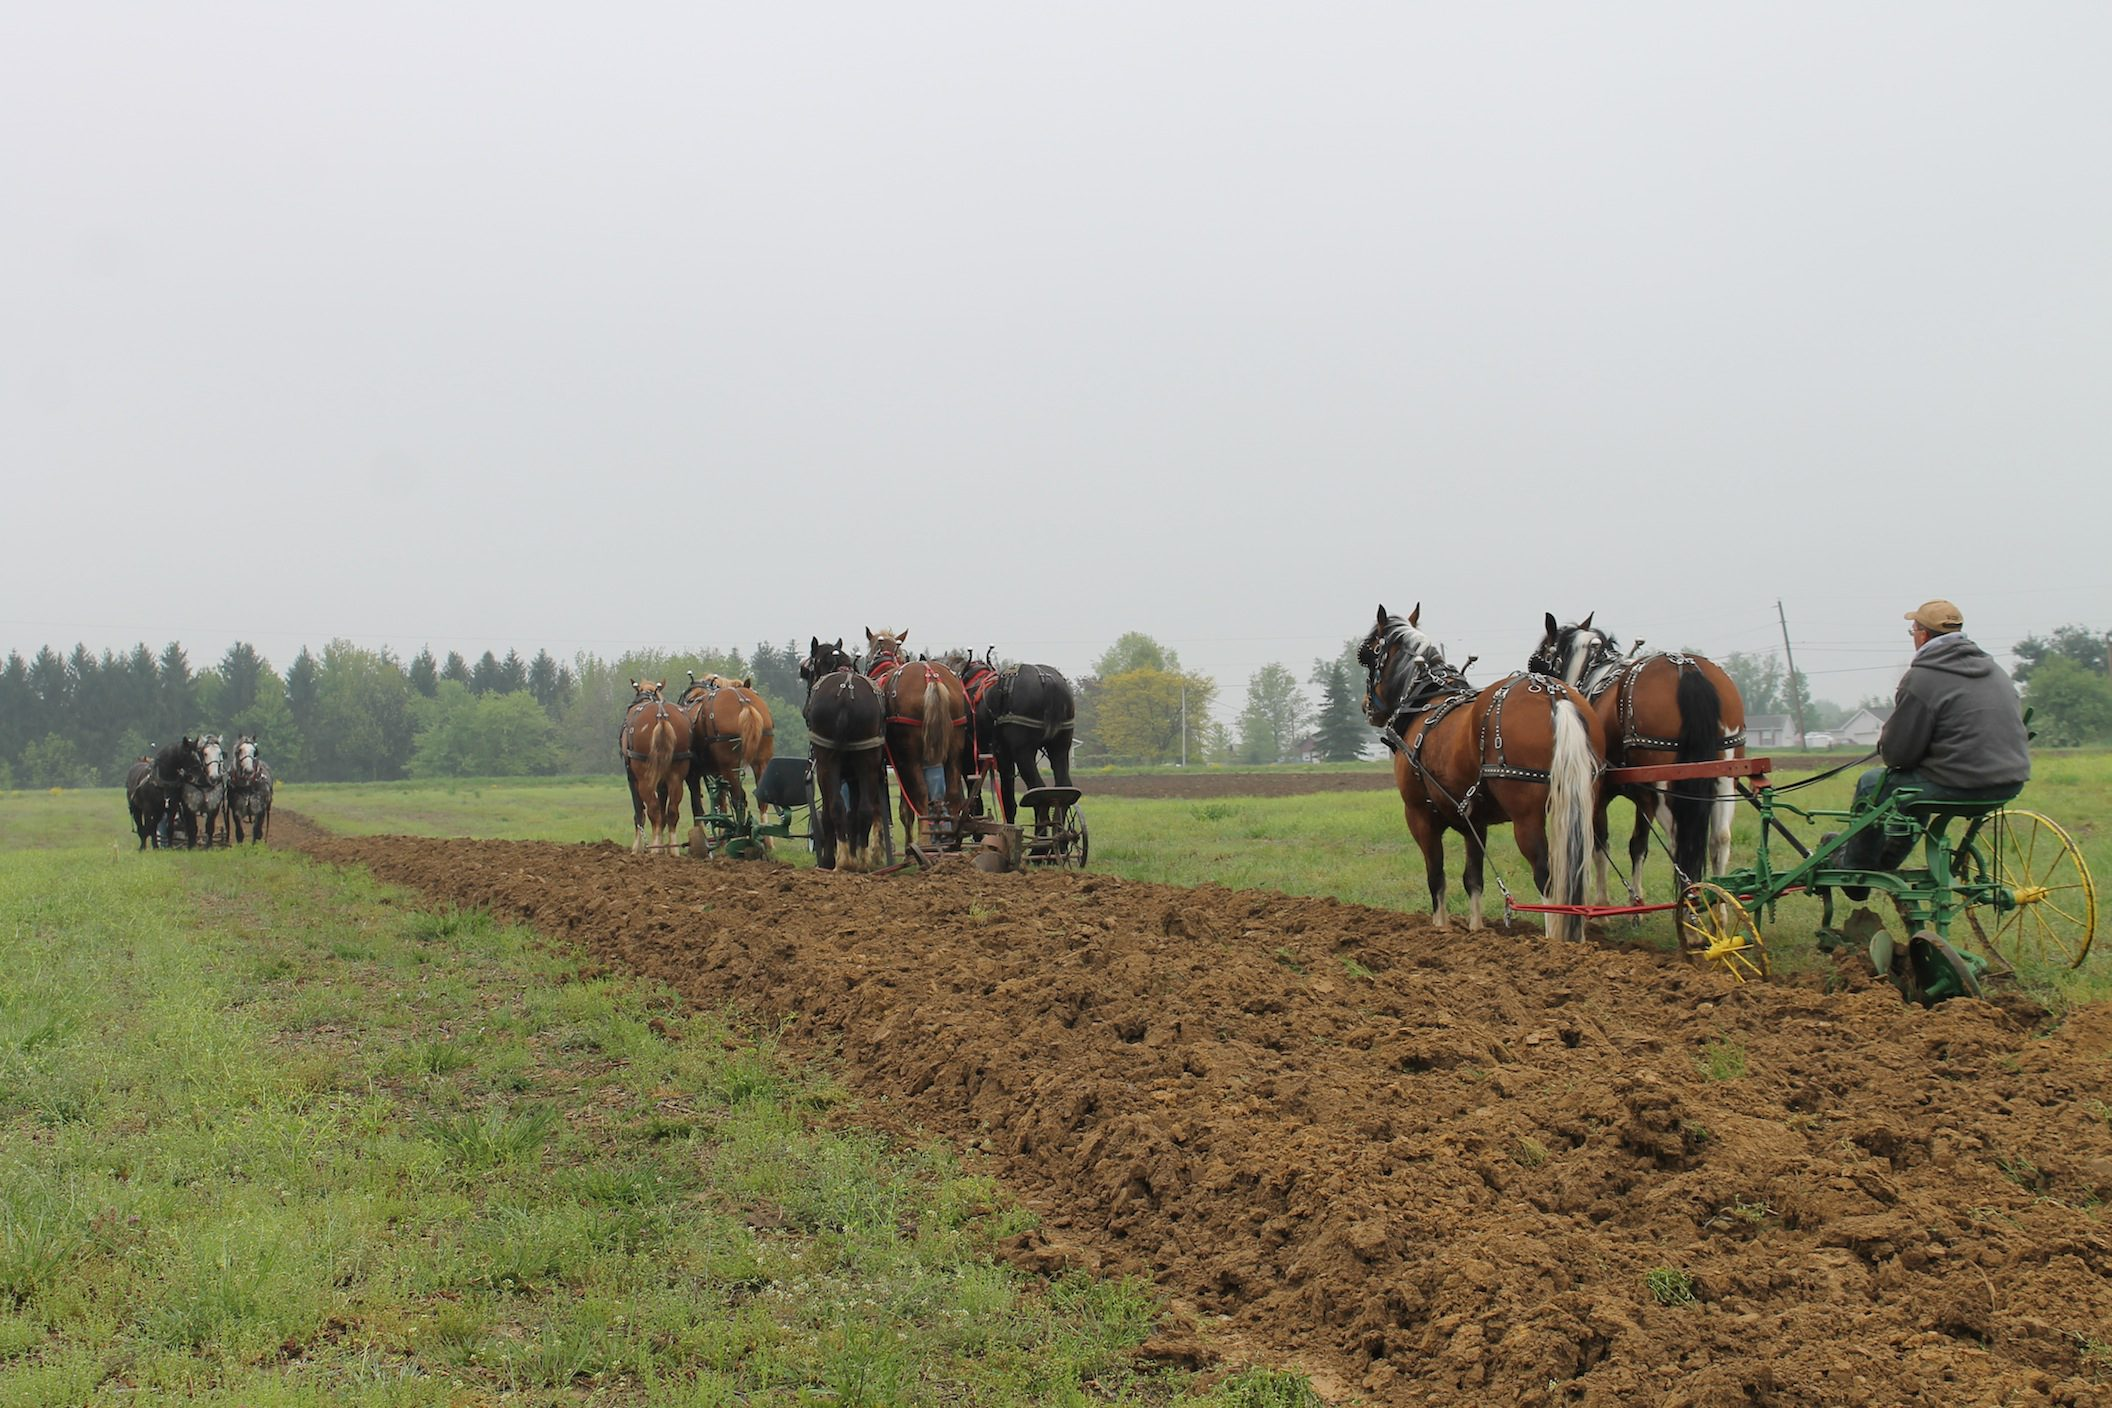 Auctions In Ohio >> Horse plowing at Rohrer Farm is a spring tradition - Farm and Dairy